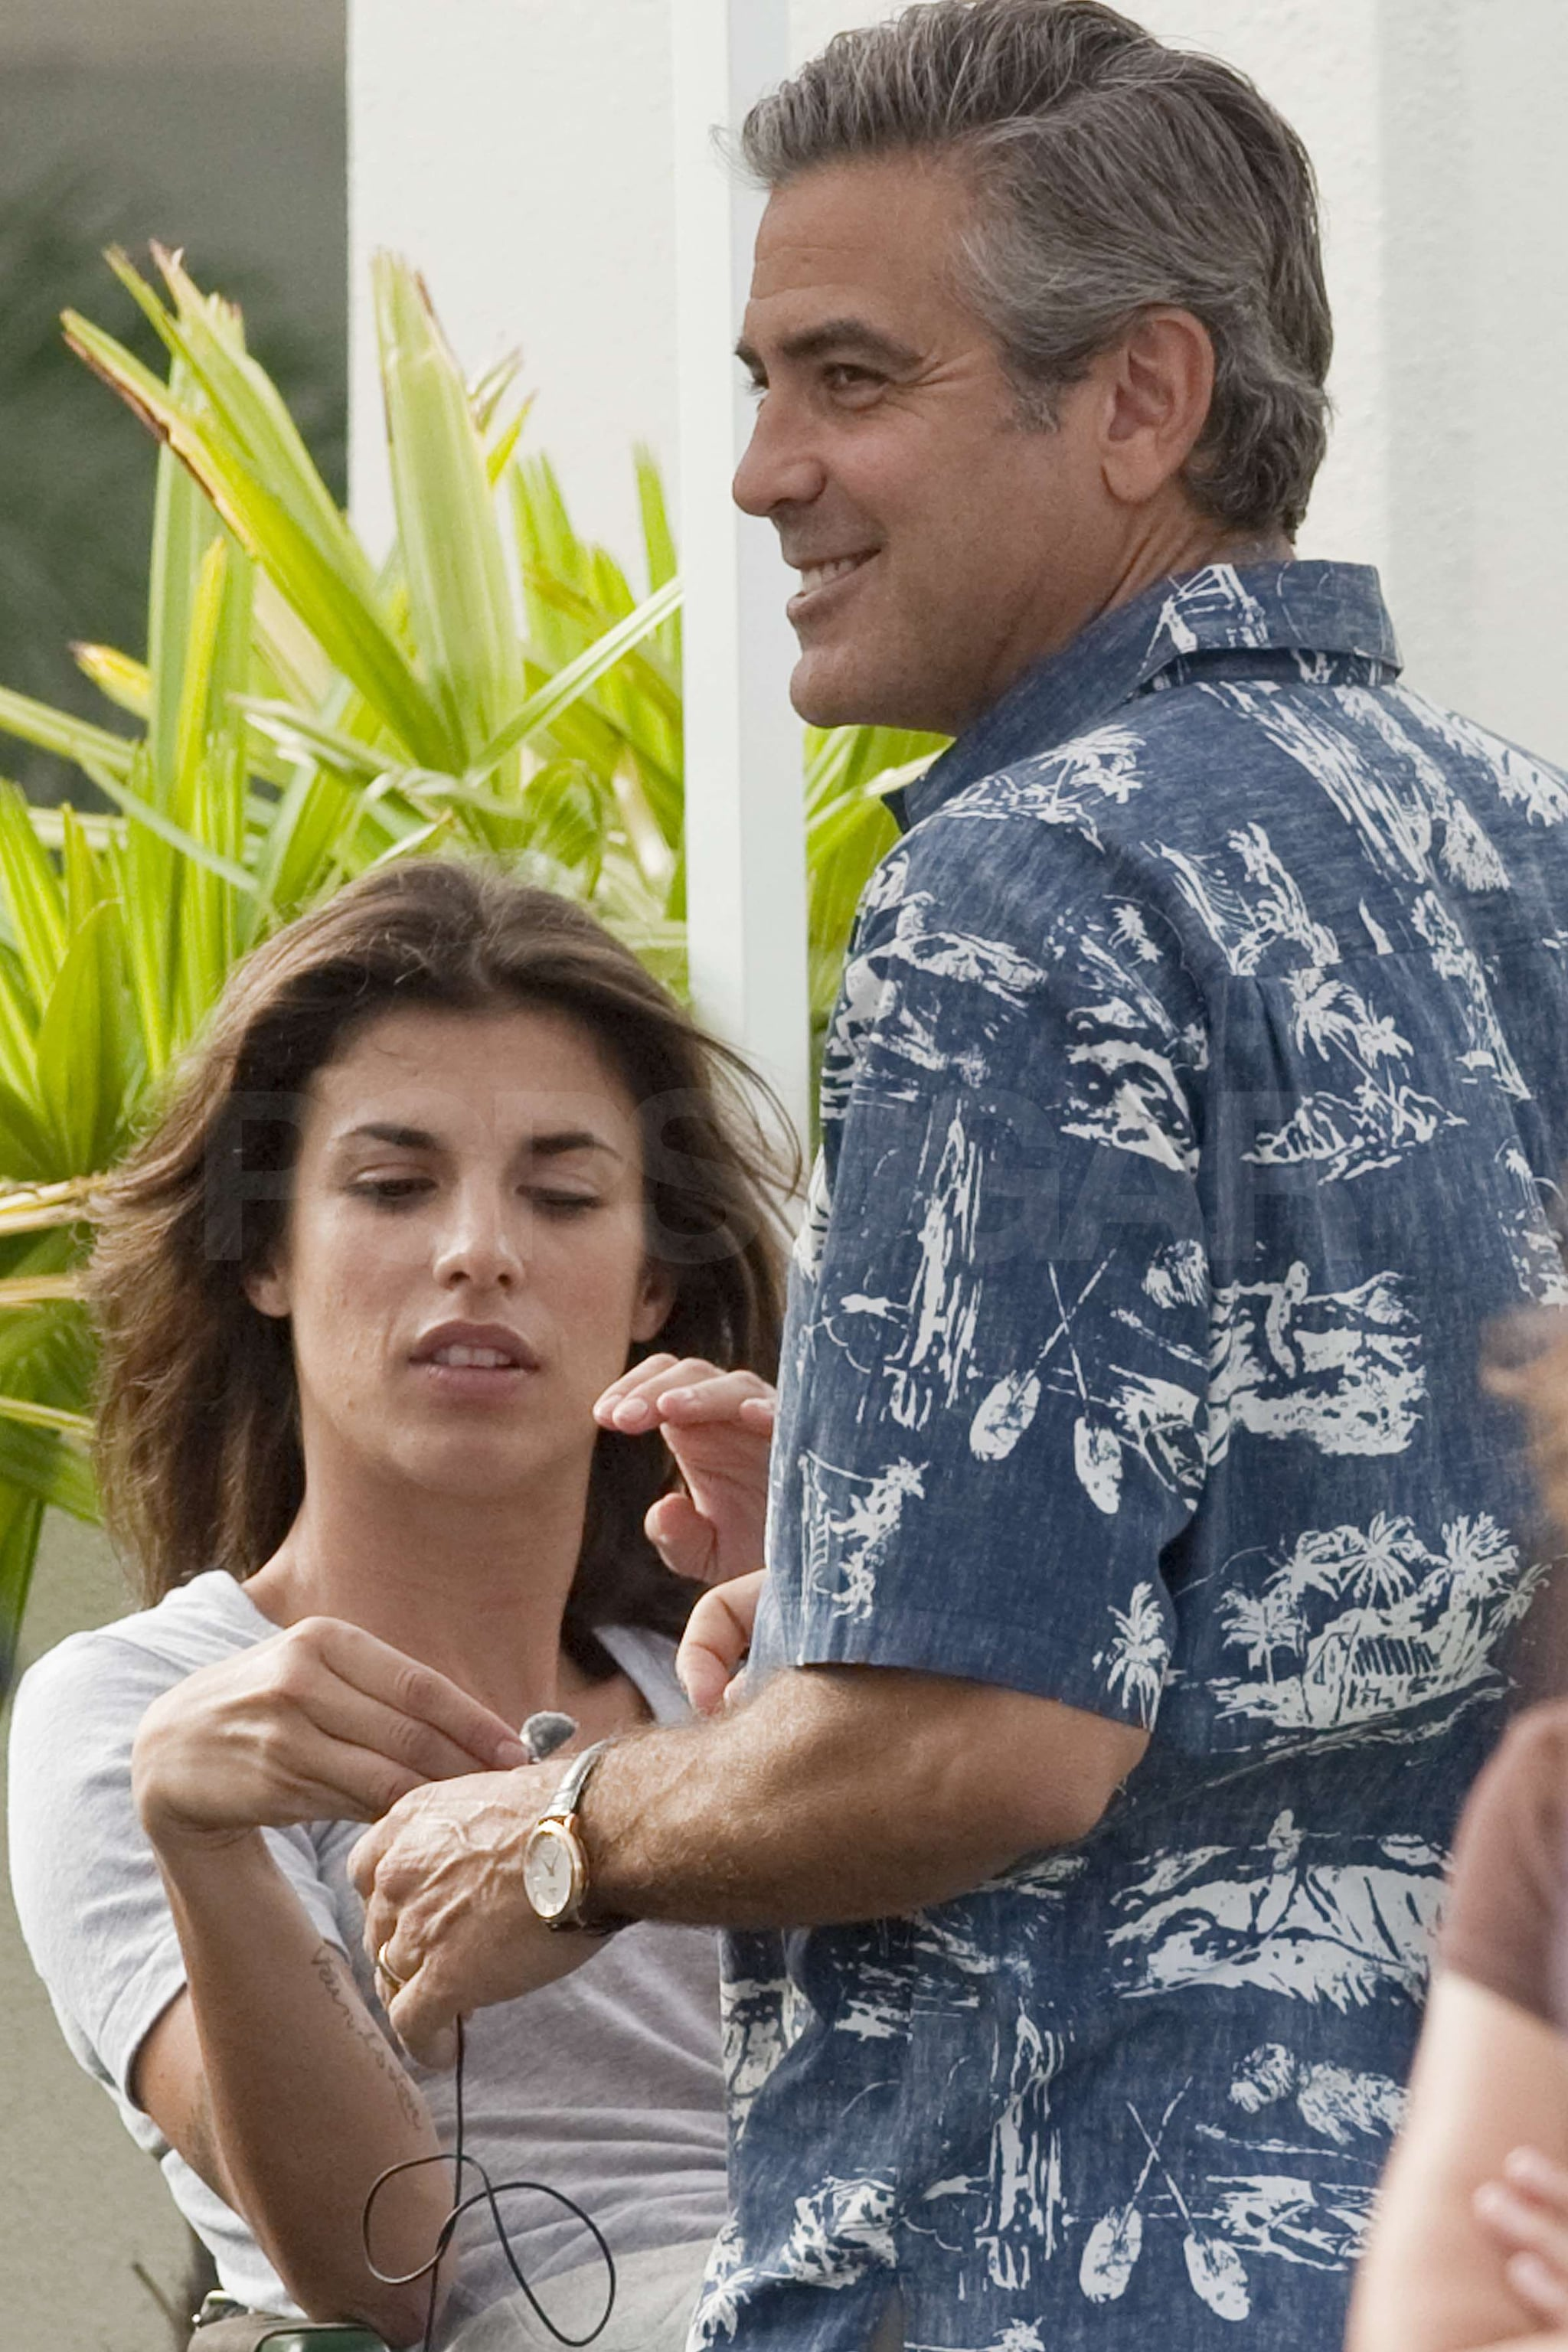 Pictures Of George Clooney And Elisabetta Canalis On The